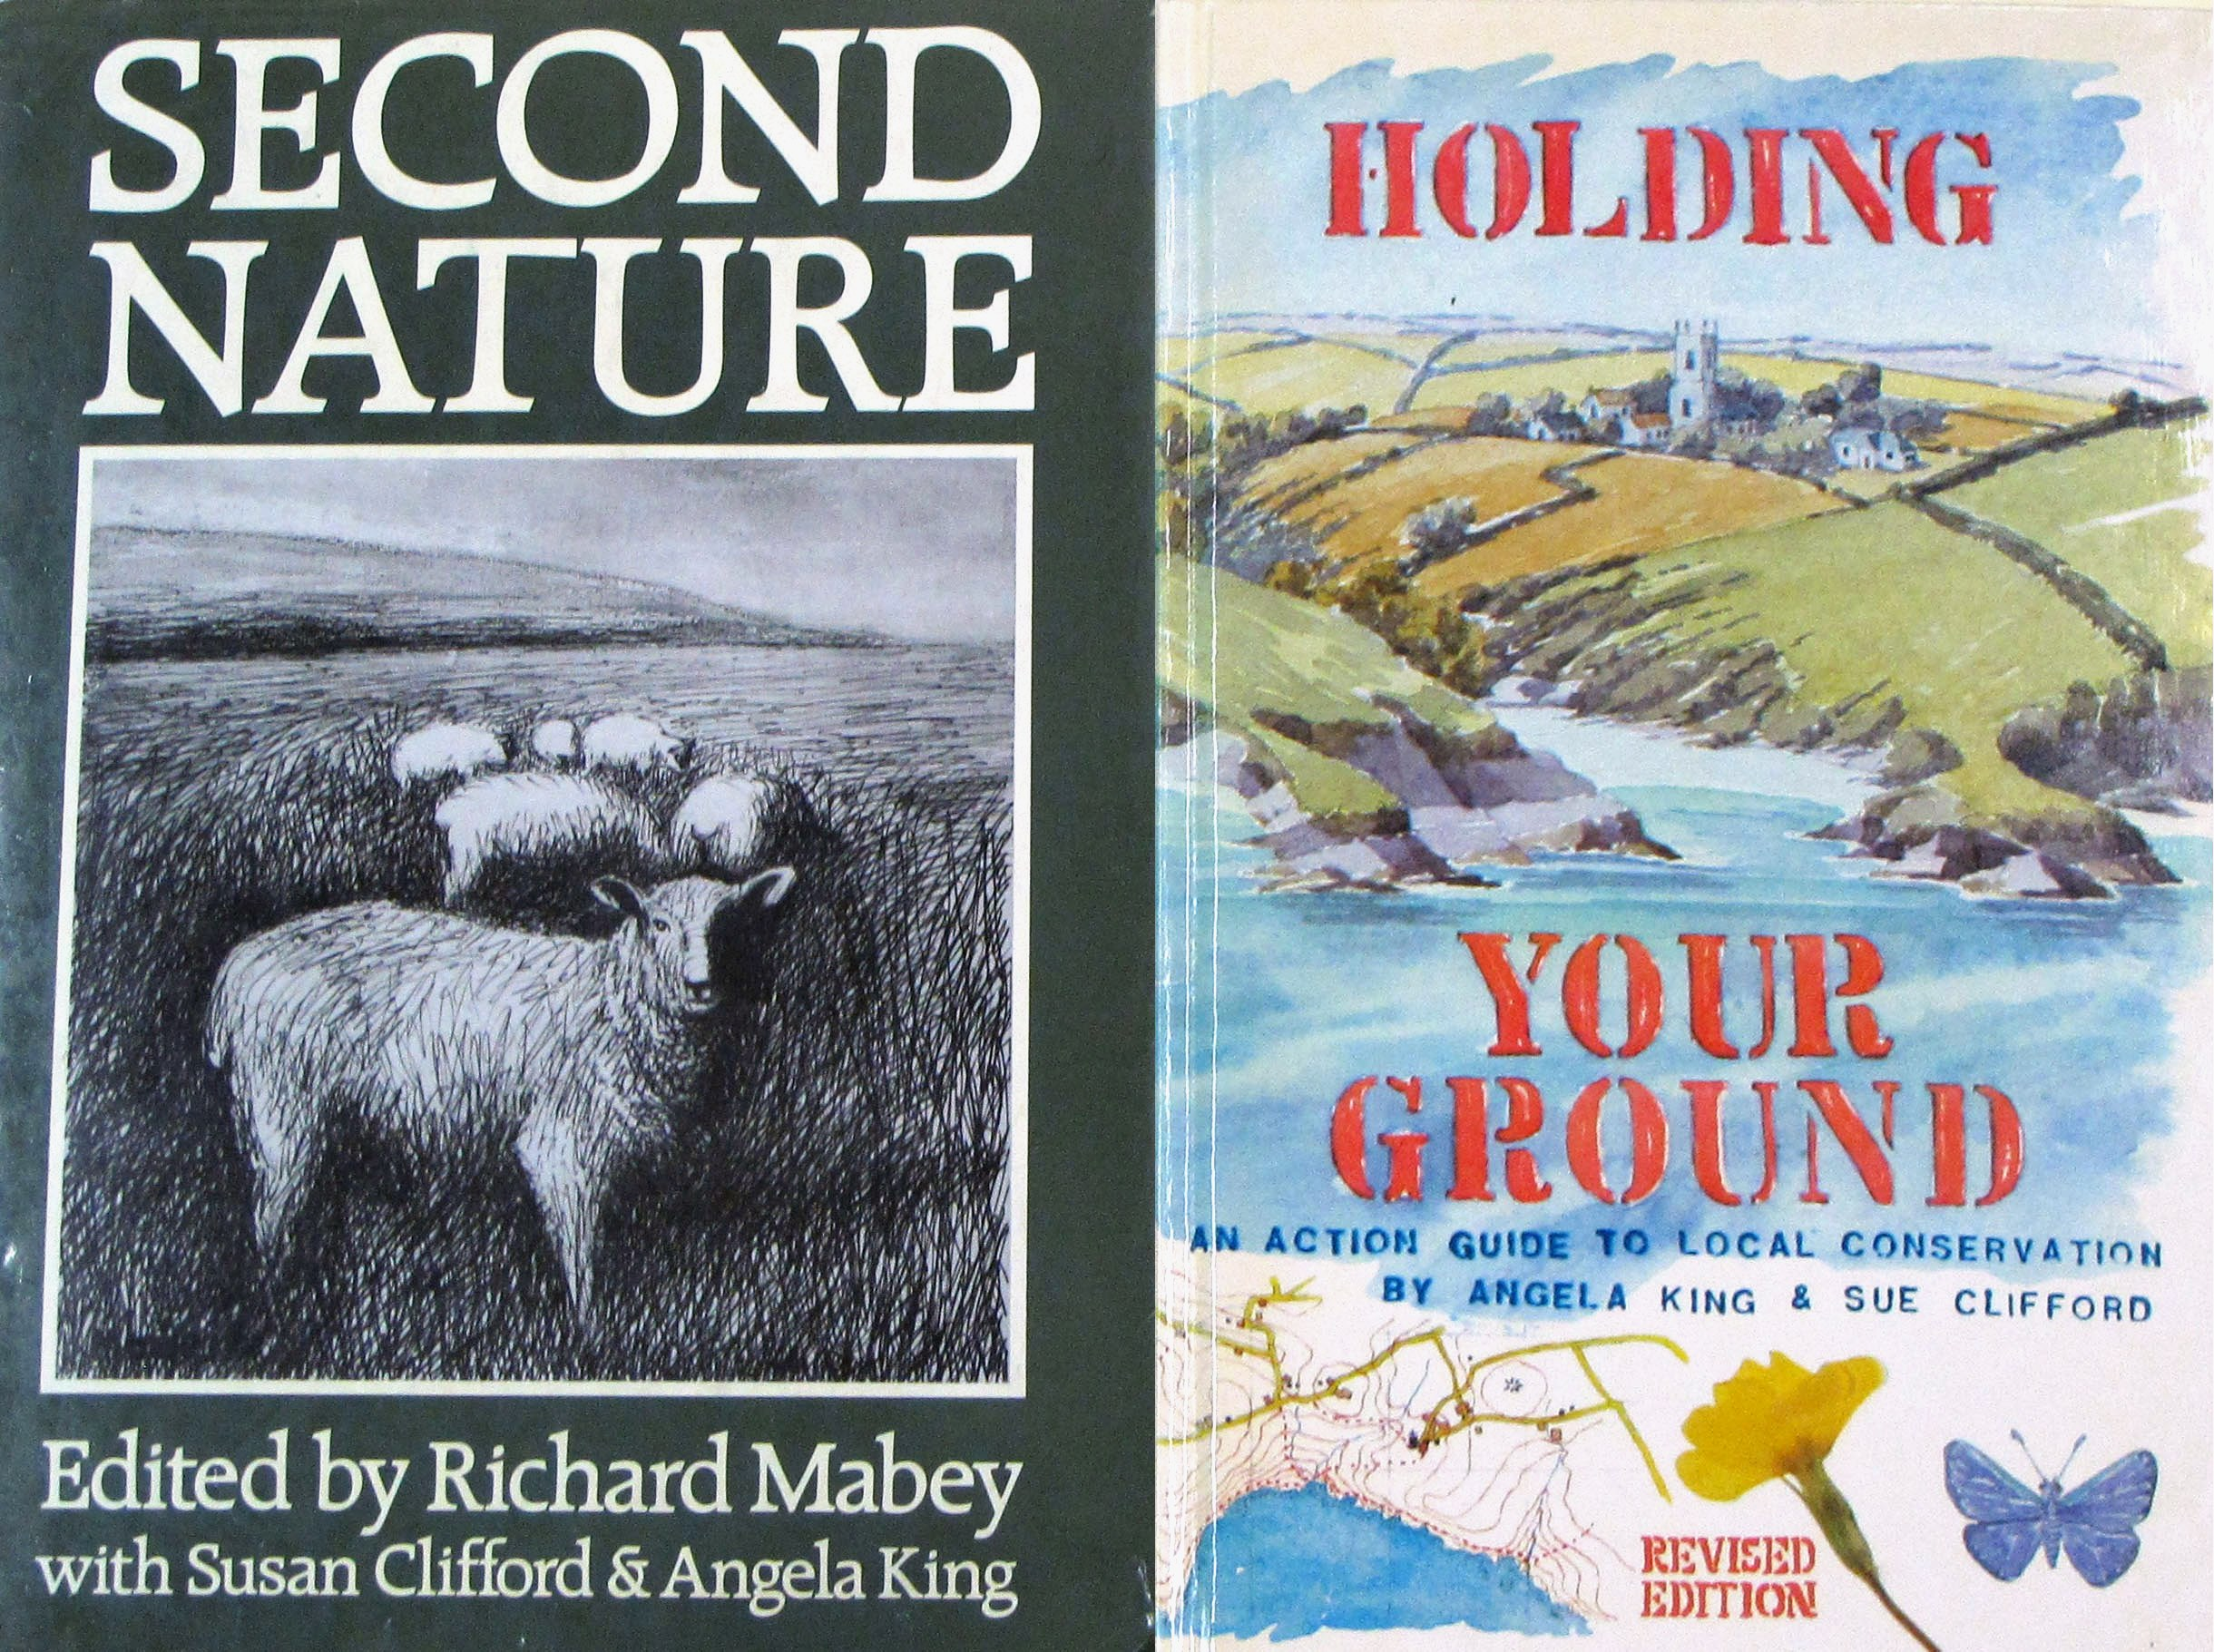 EUL MS 416/PRO/1-2 - Archive material relating to the 'Second Nature' and 'Holding Your Ground' project